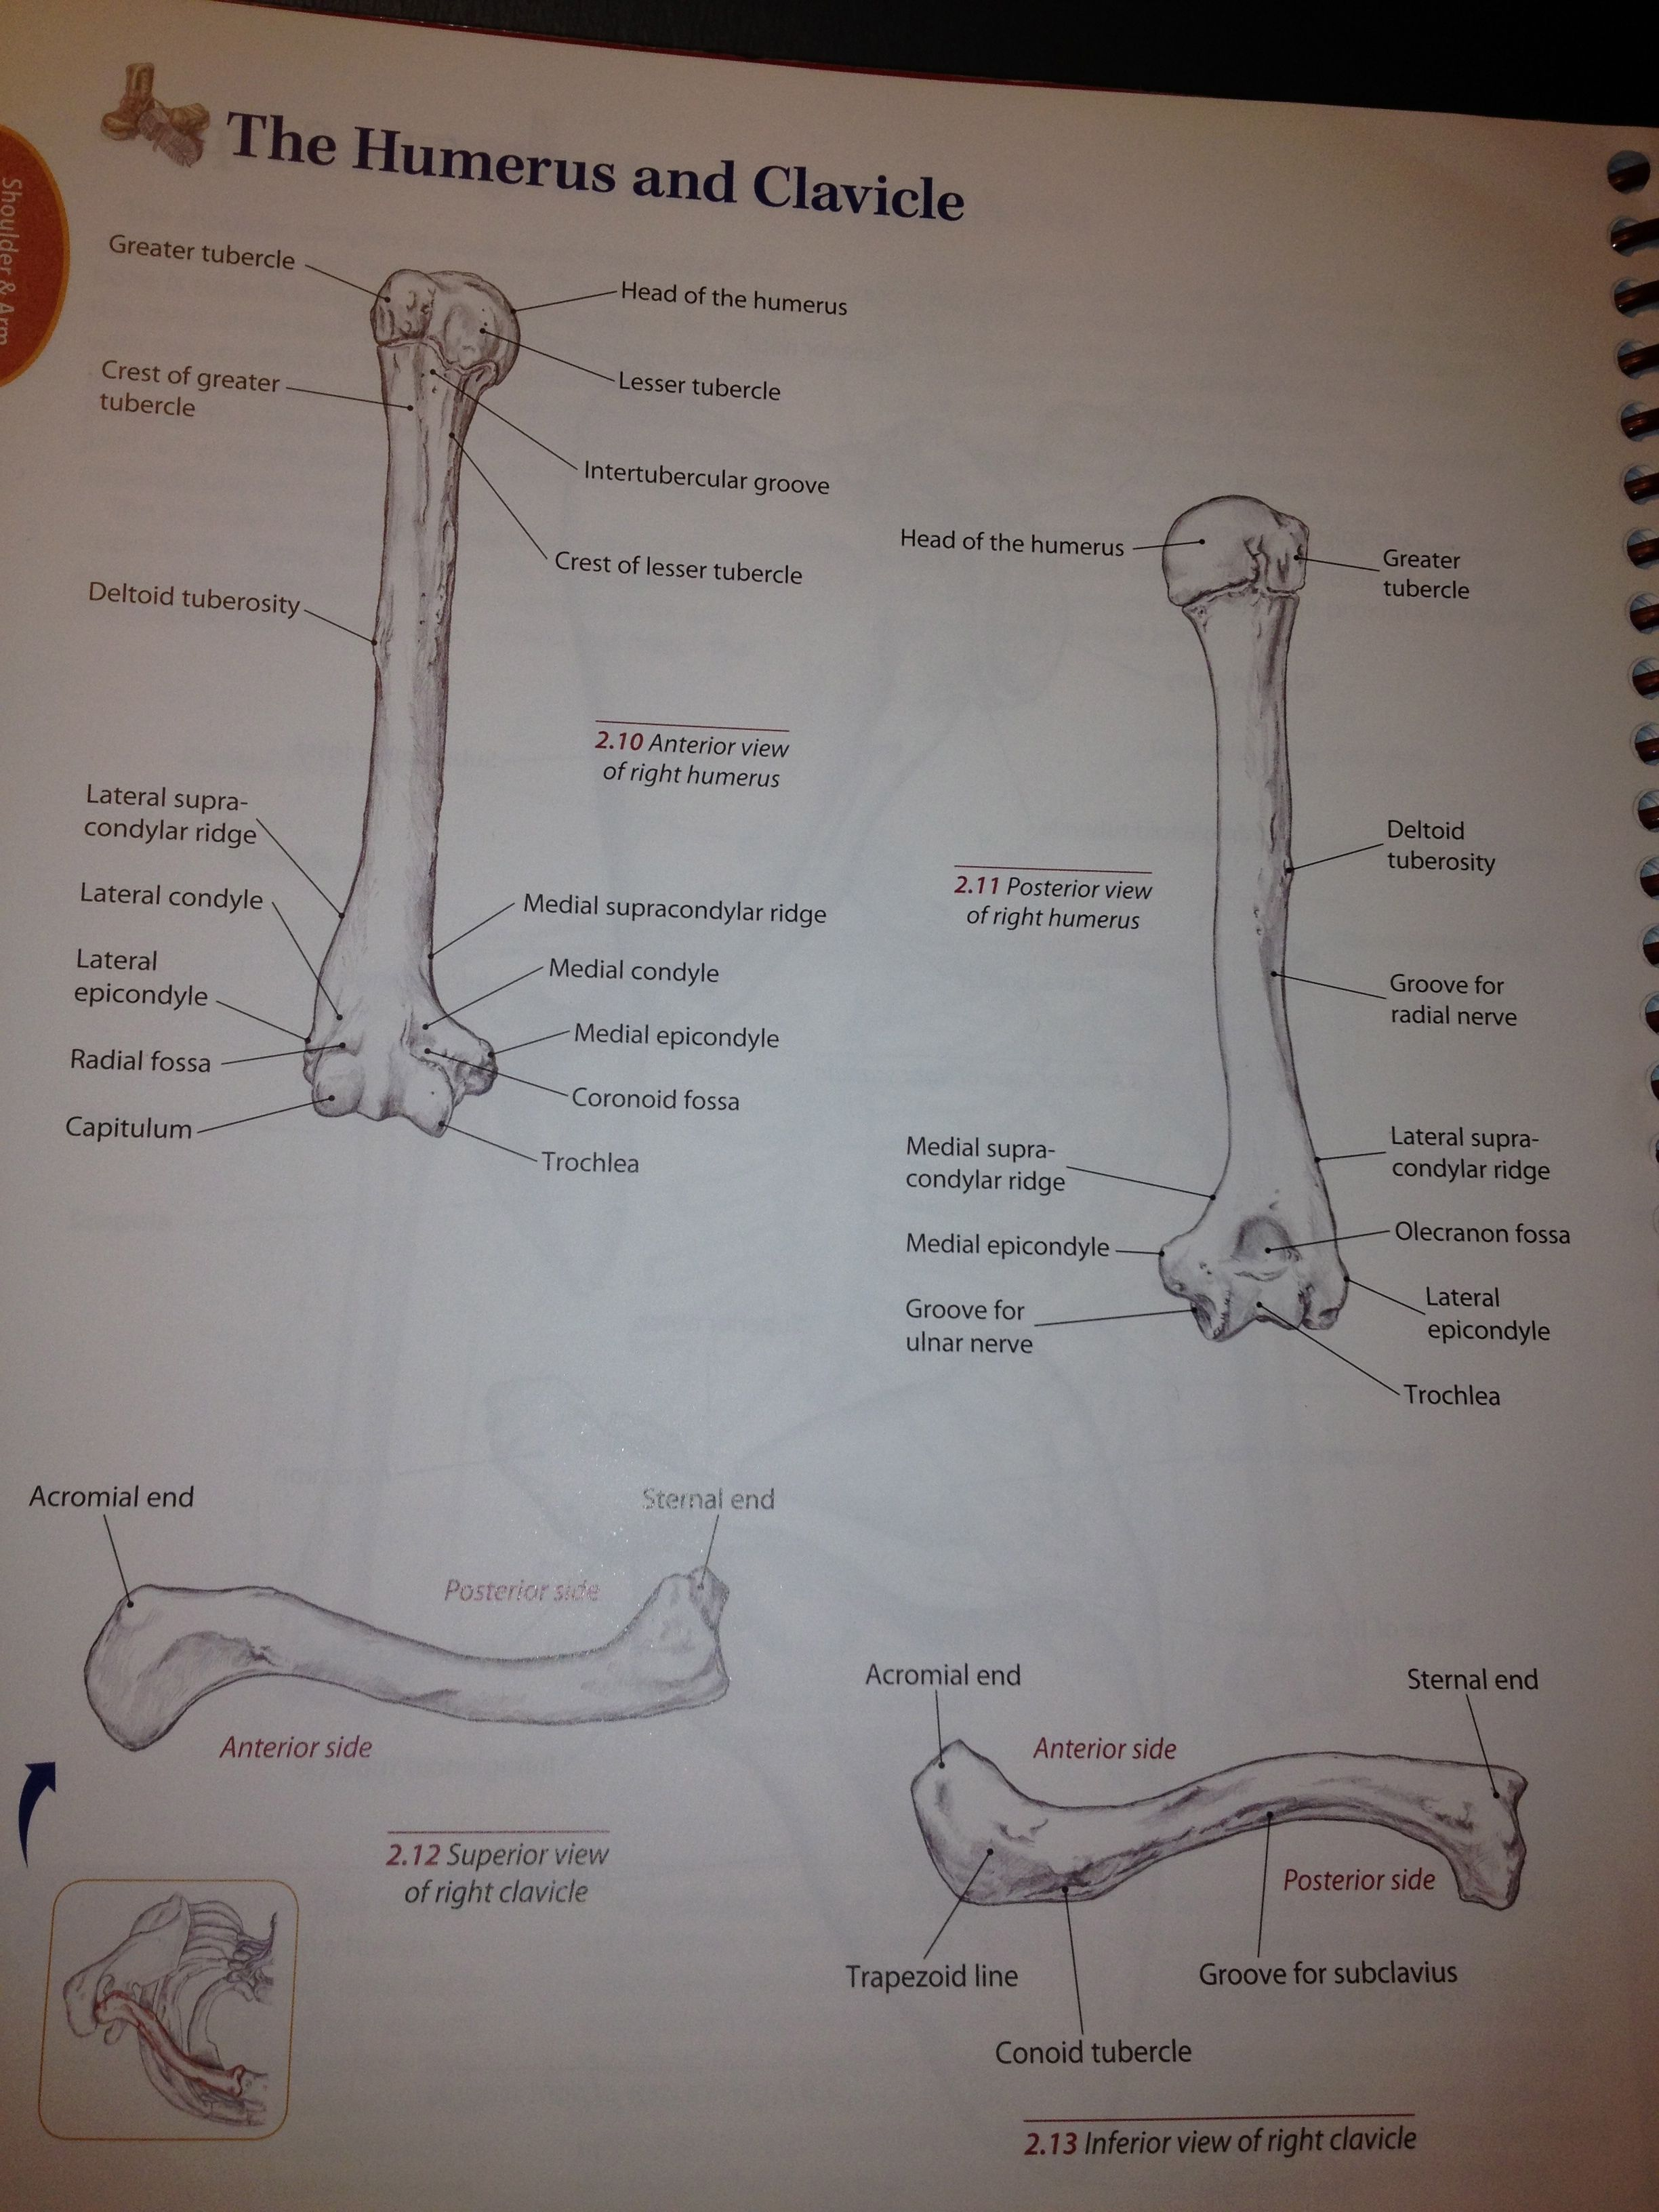 Boney Landmarks Of The Humerus And Clavicle